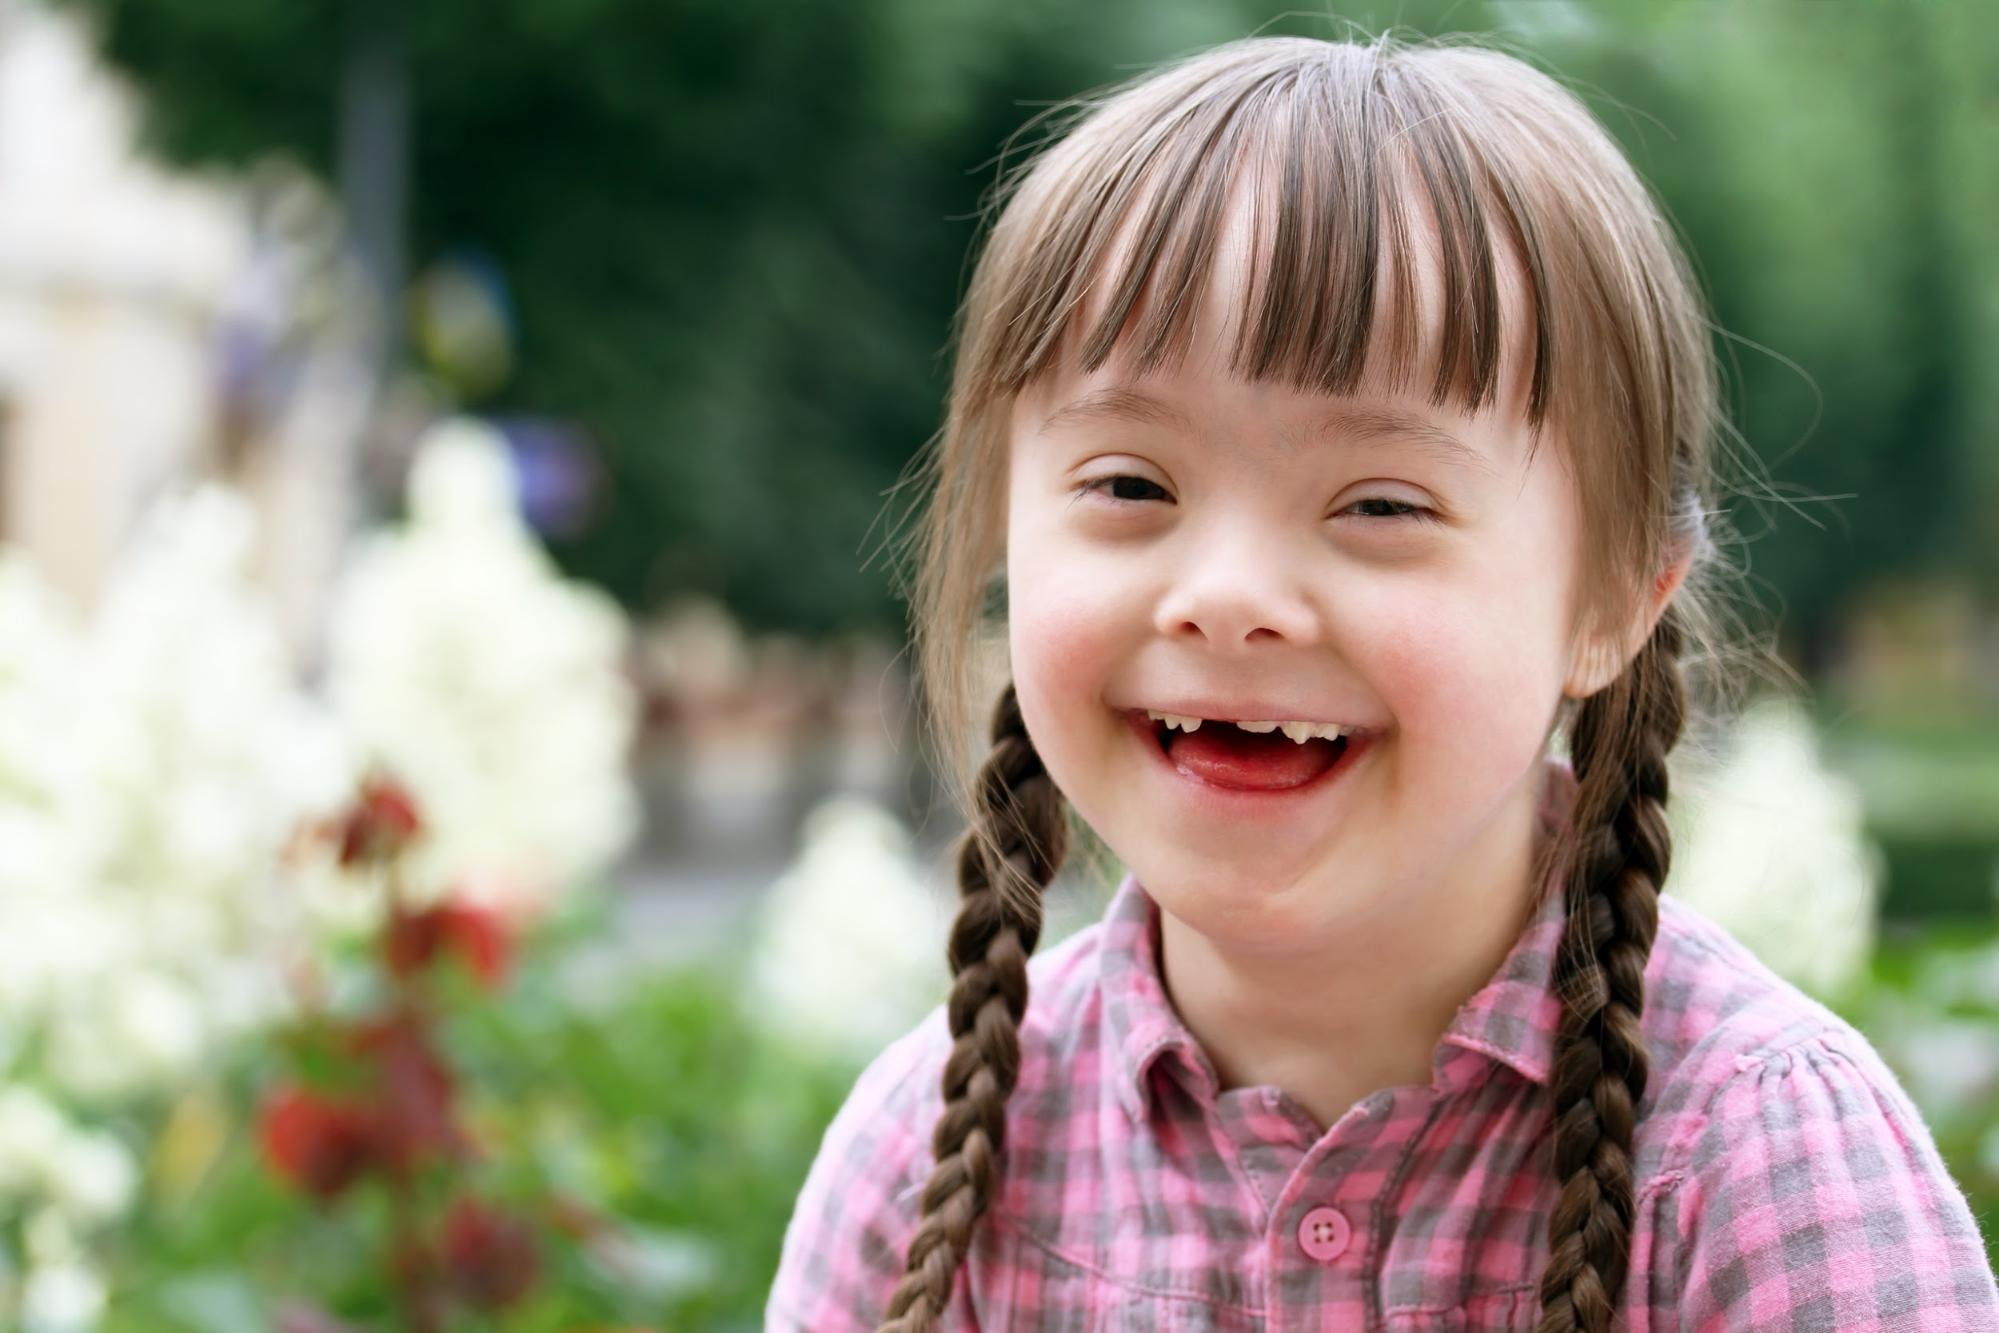 Hearing loss in children with down syndrome